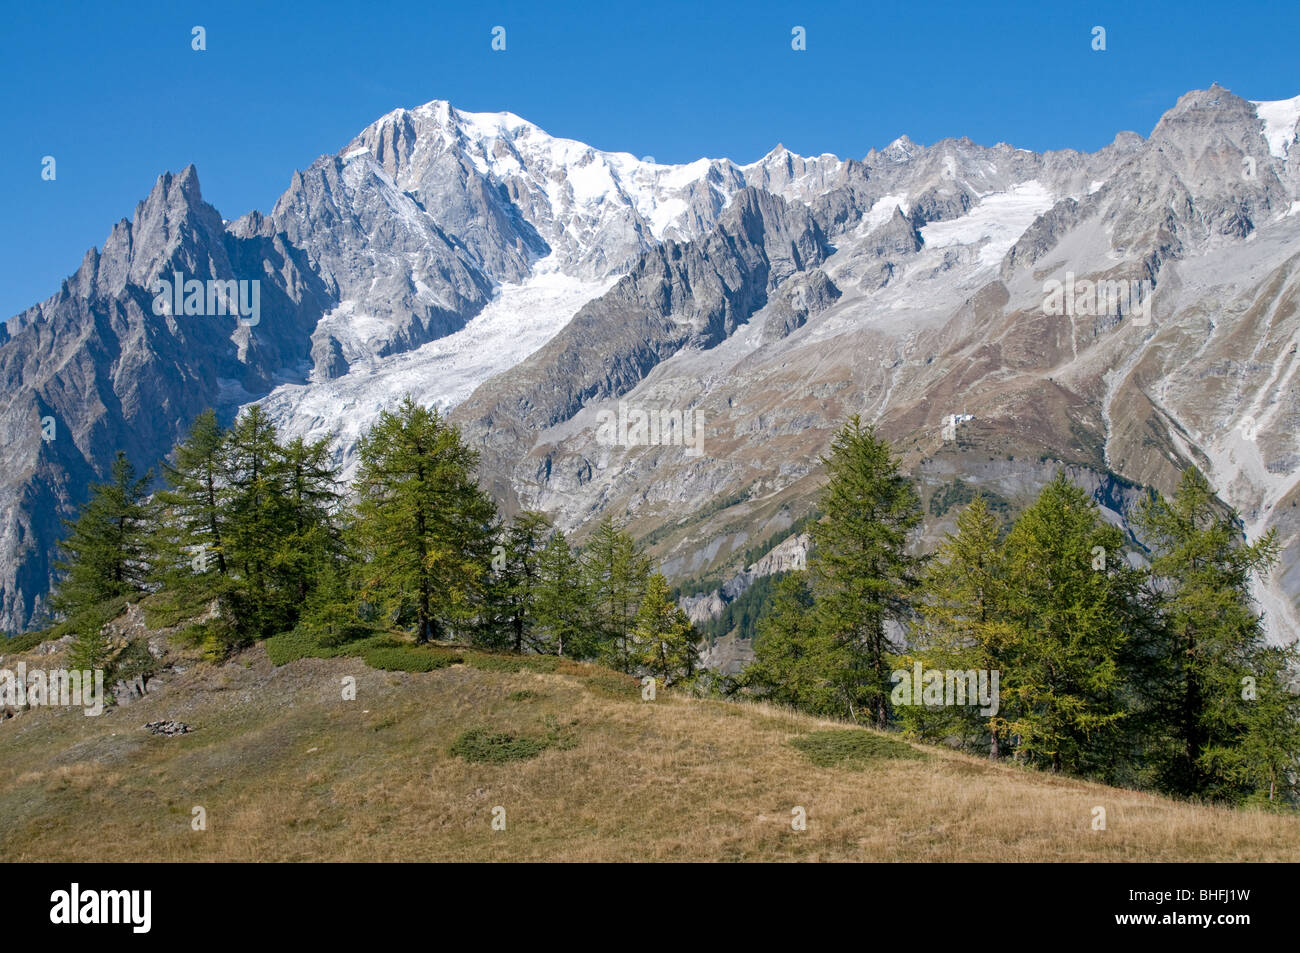 val ferret and mont blanc (monte bianco), courmayeur, valle d'aosta, italy - Stock Image